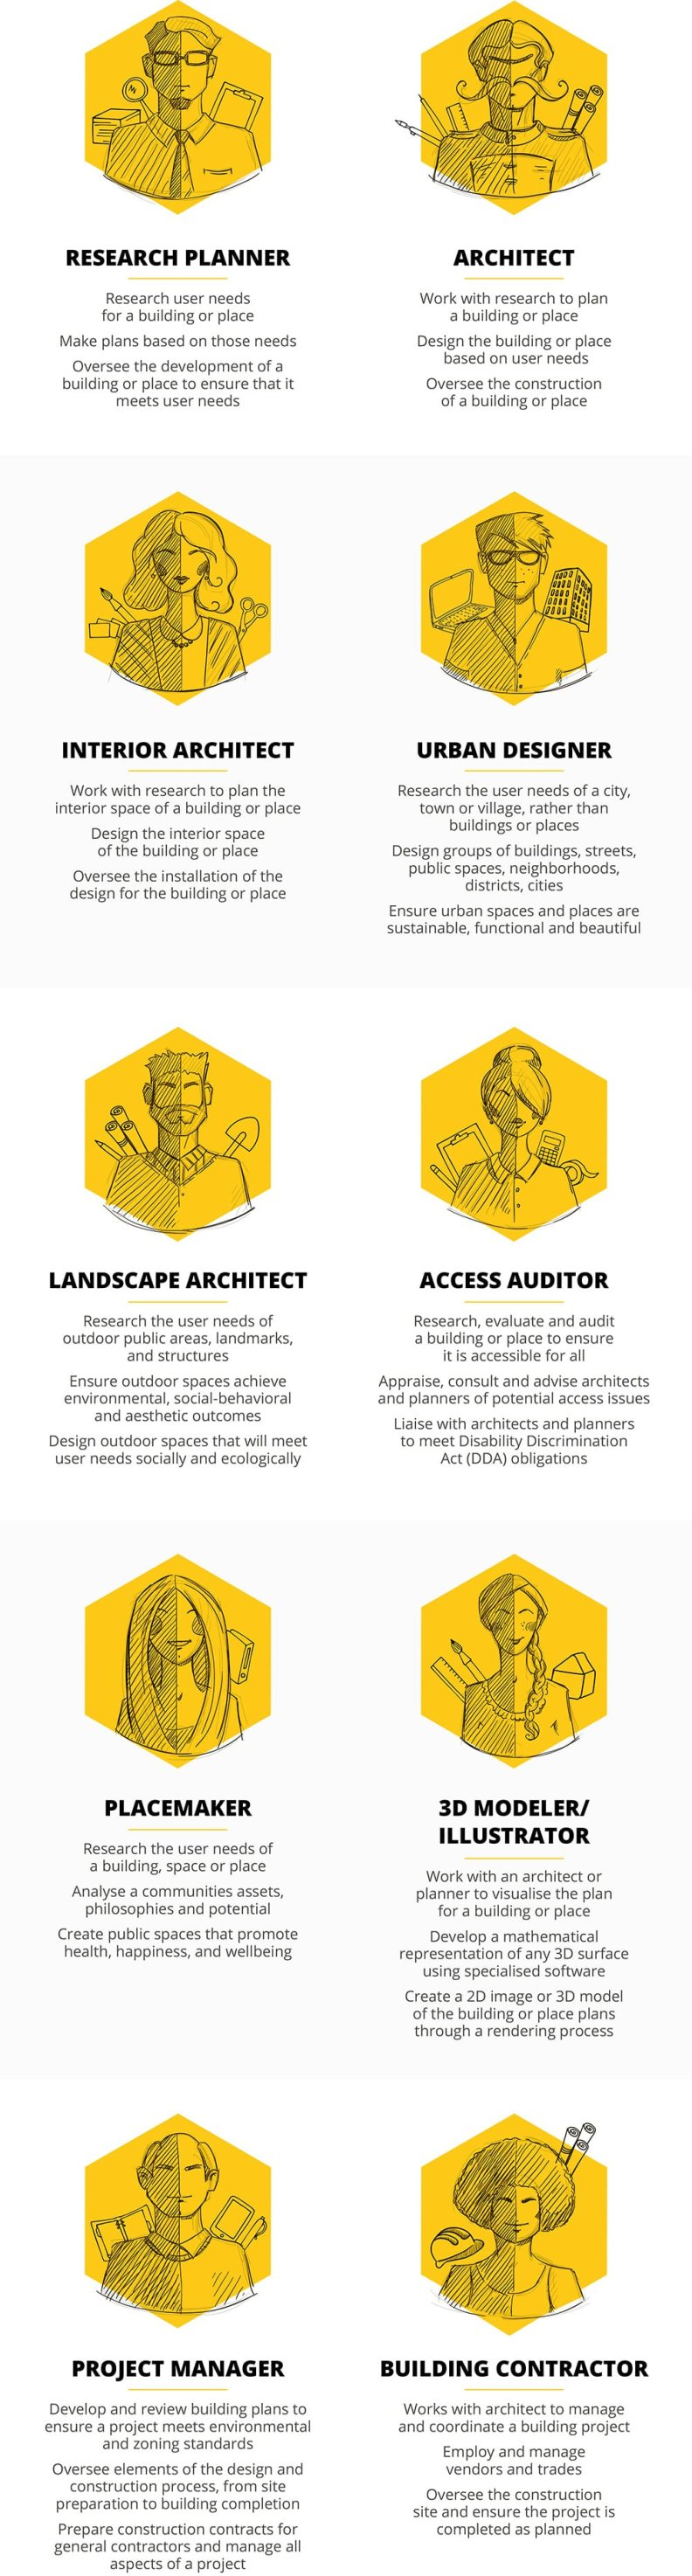 {Architectural Architypes